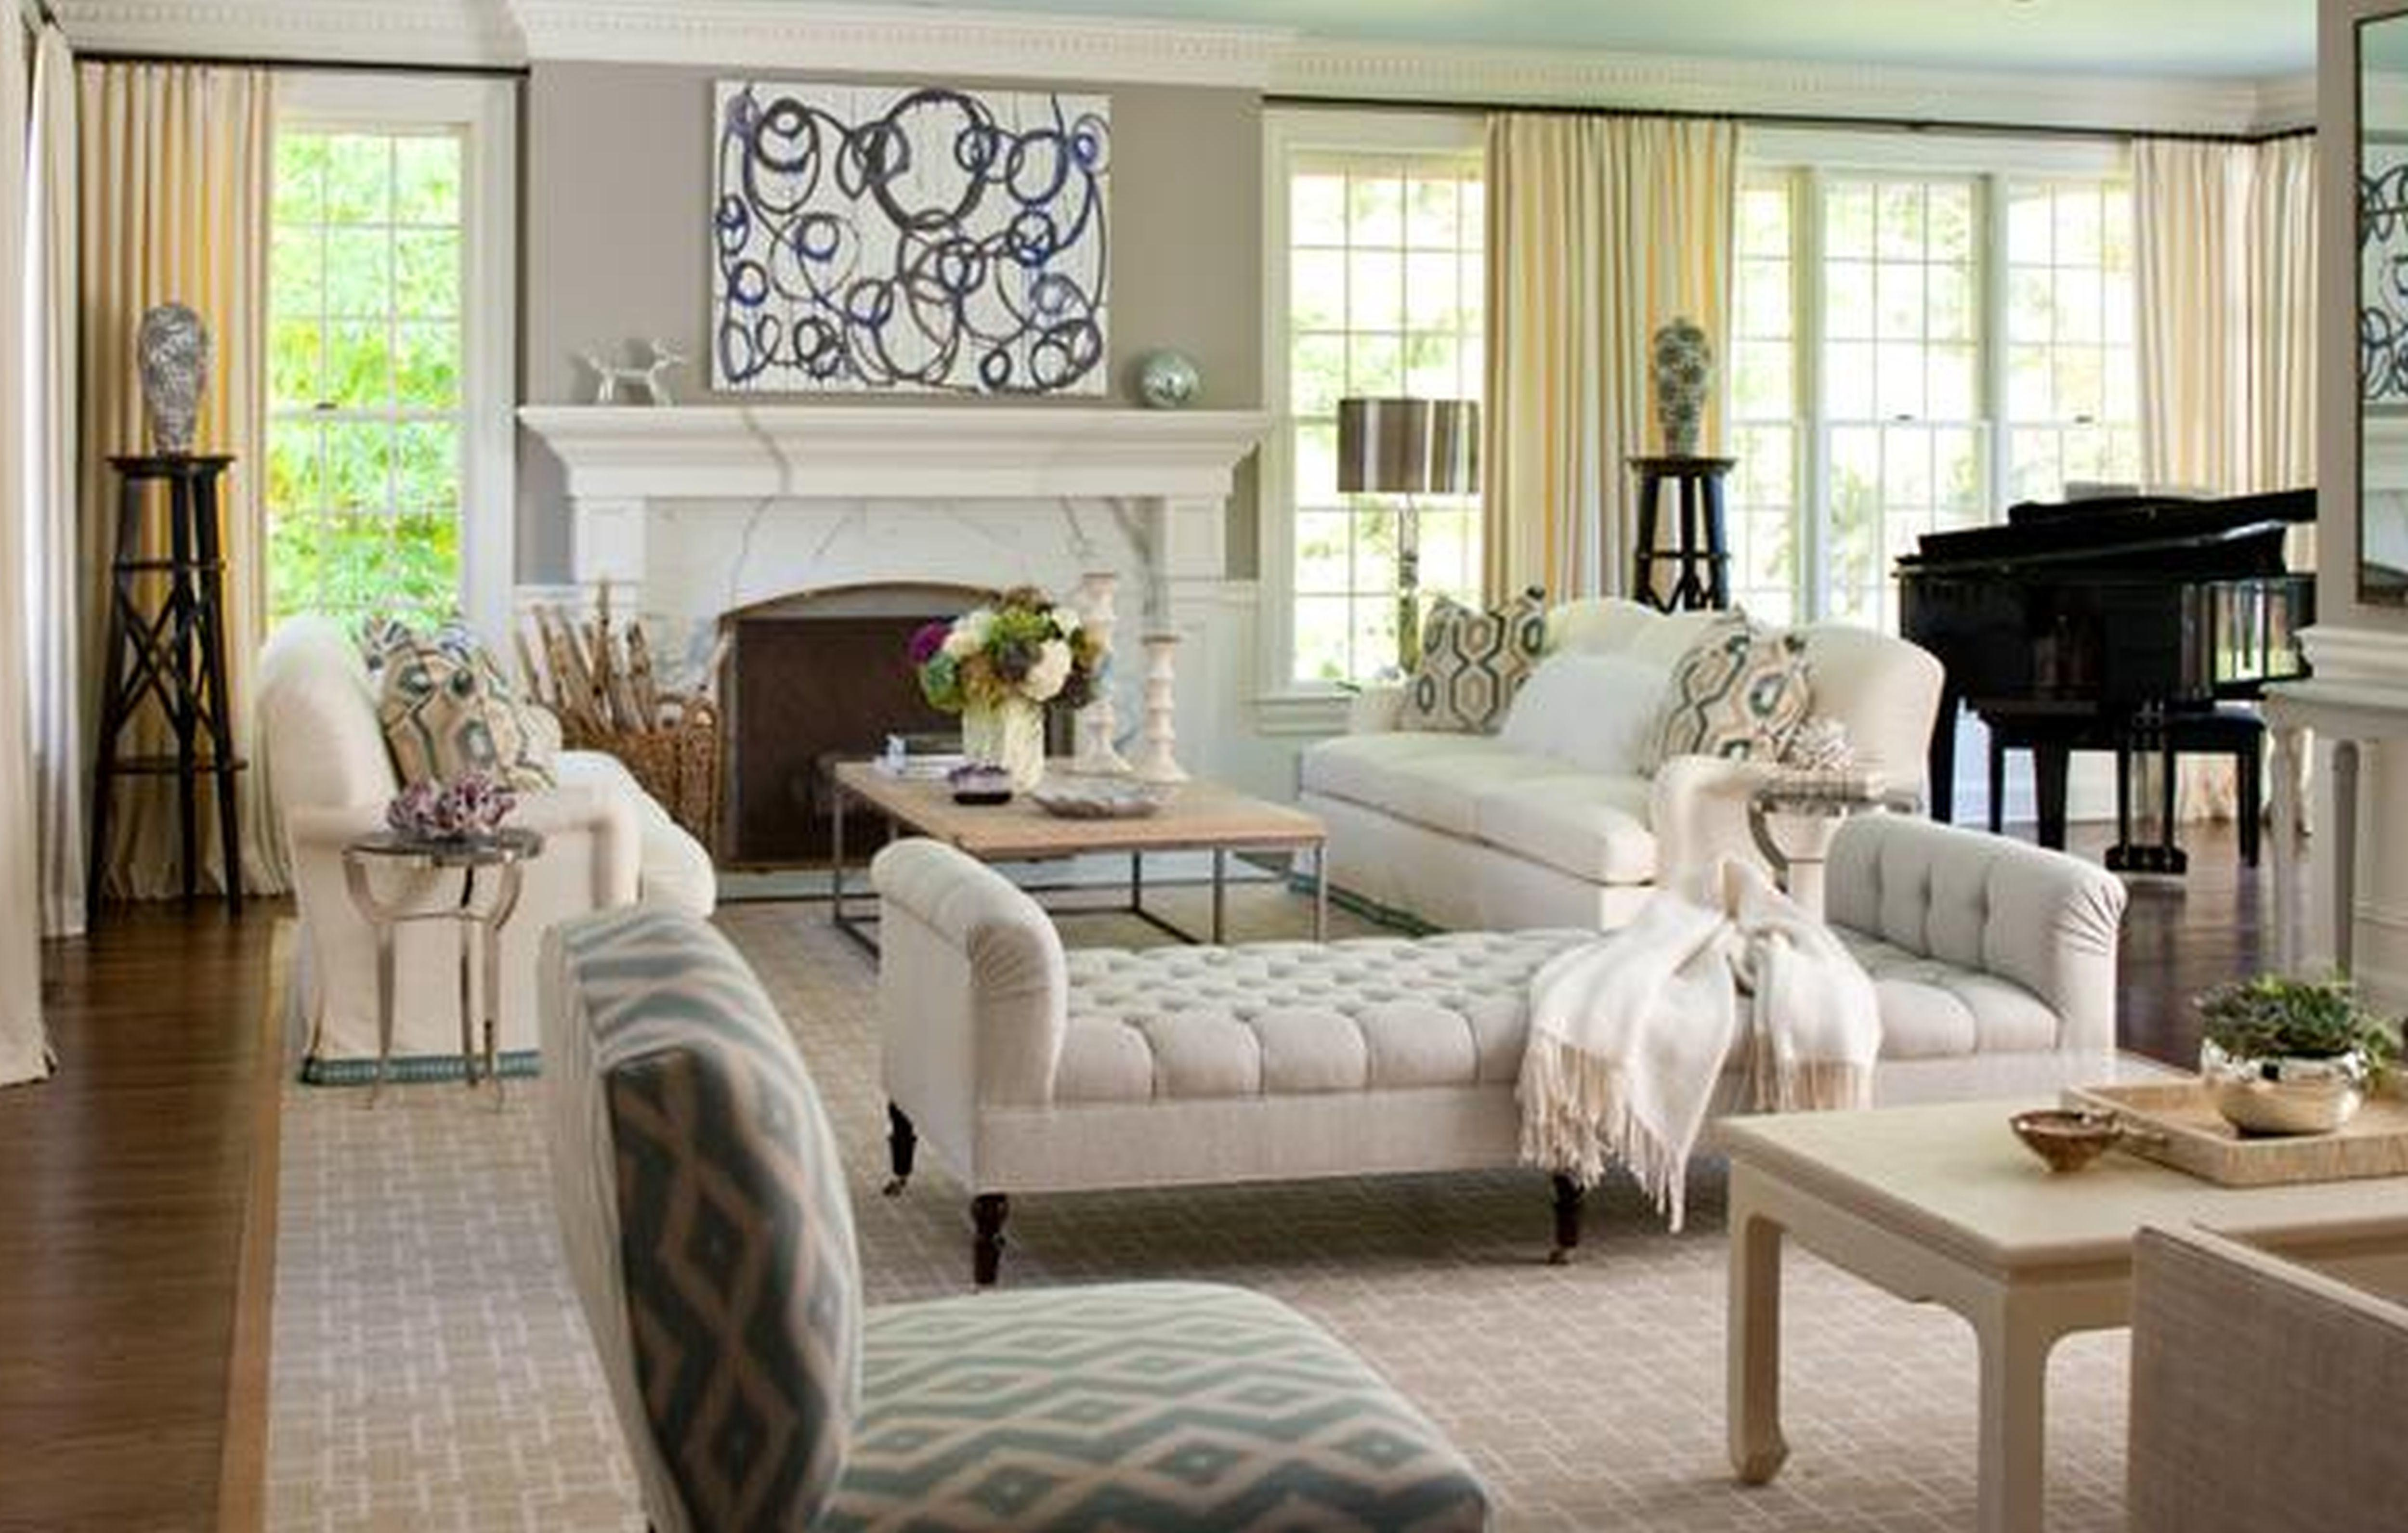 Beautiful White Tufted Chaise Lounge Also Fireplace